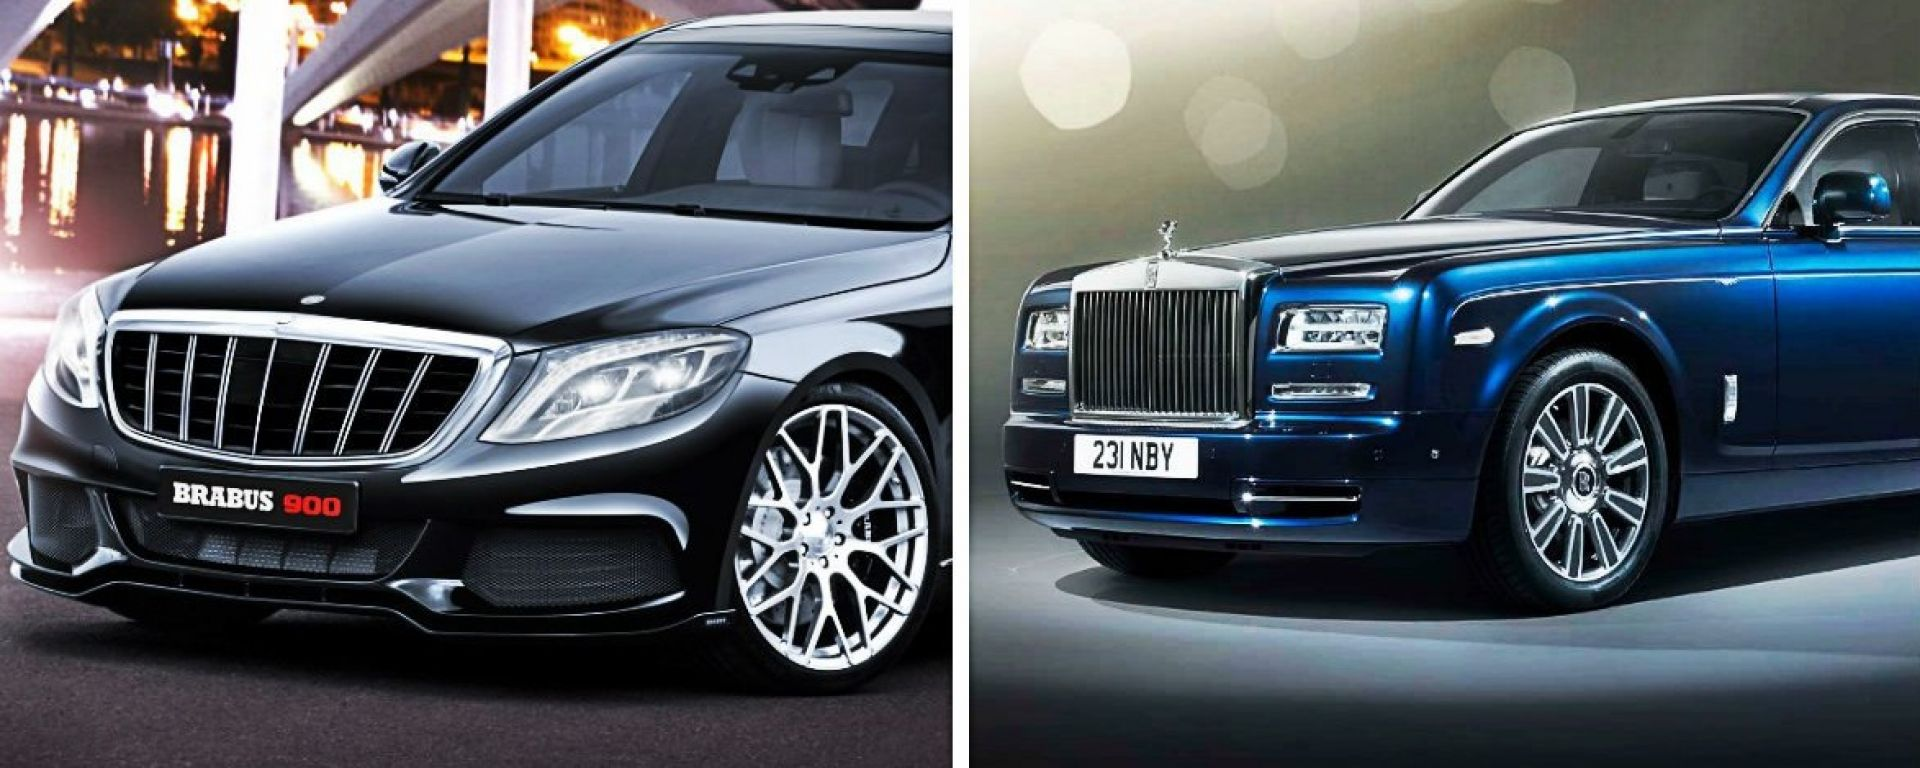 Brabus S900 vs Rolls Royce Phantom